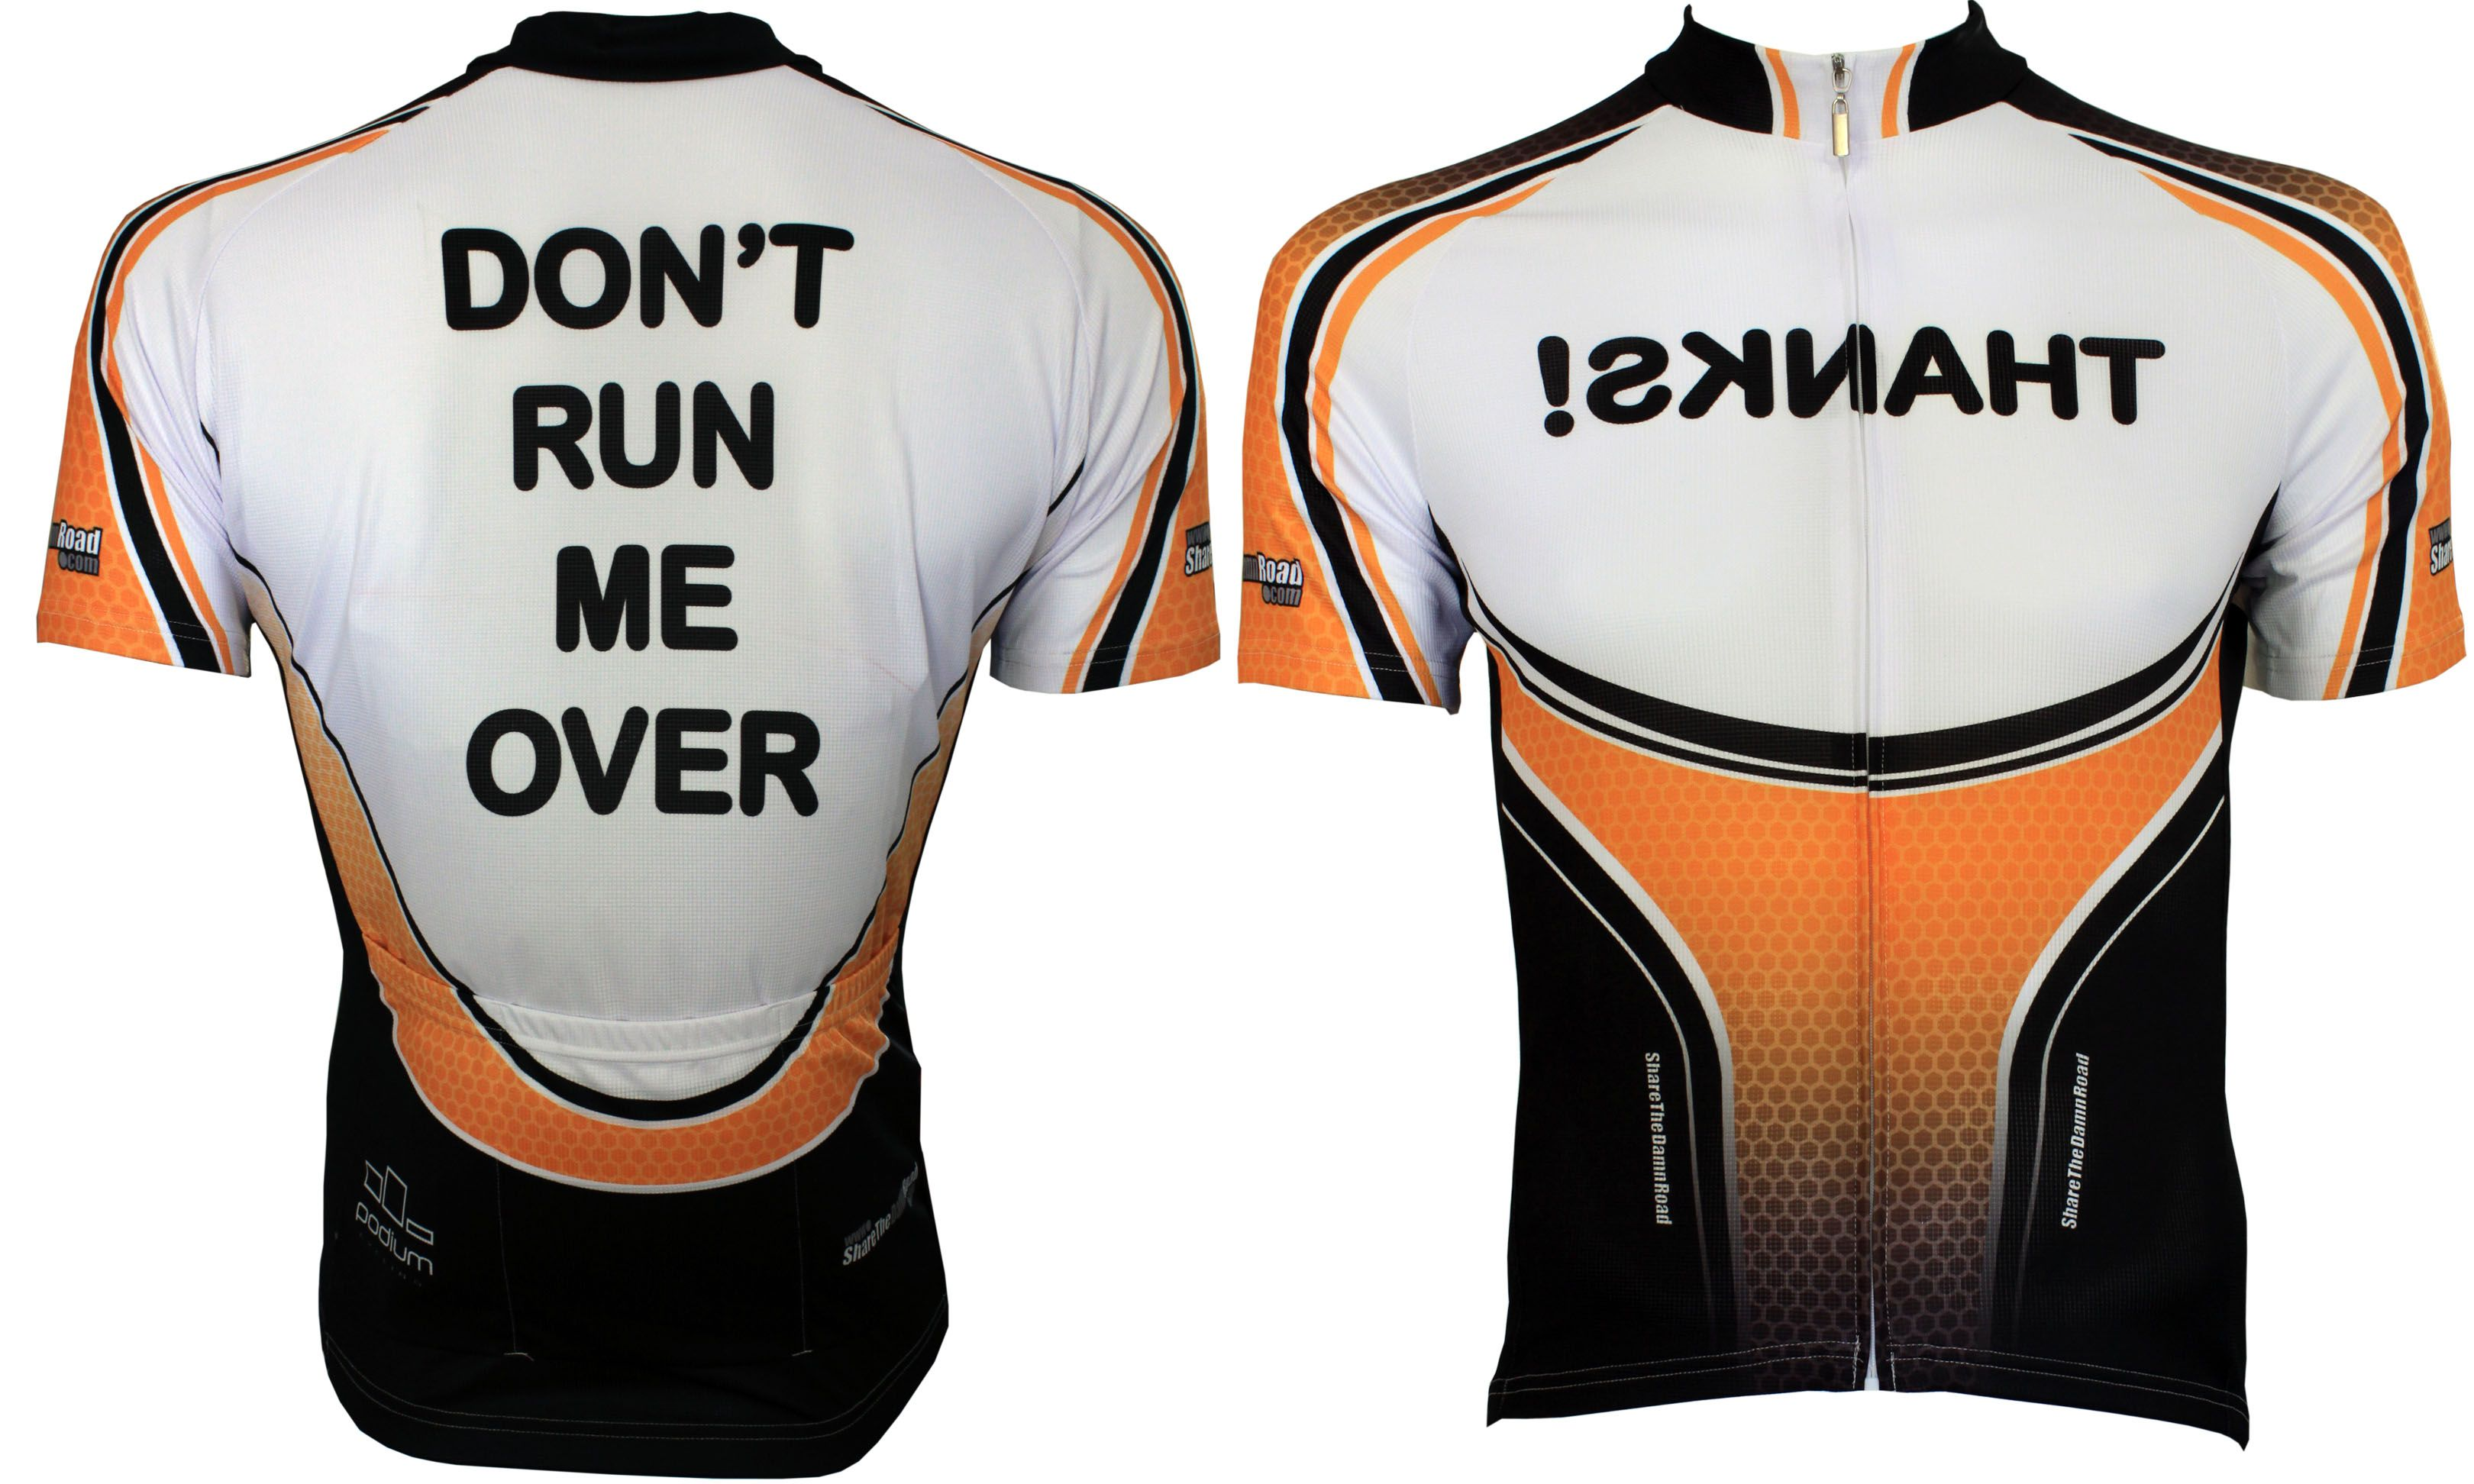 DONT RUN ME OVER Cycling Jersey- Need it!